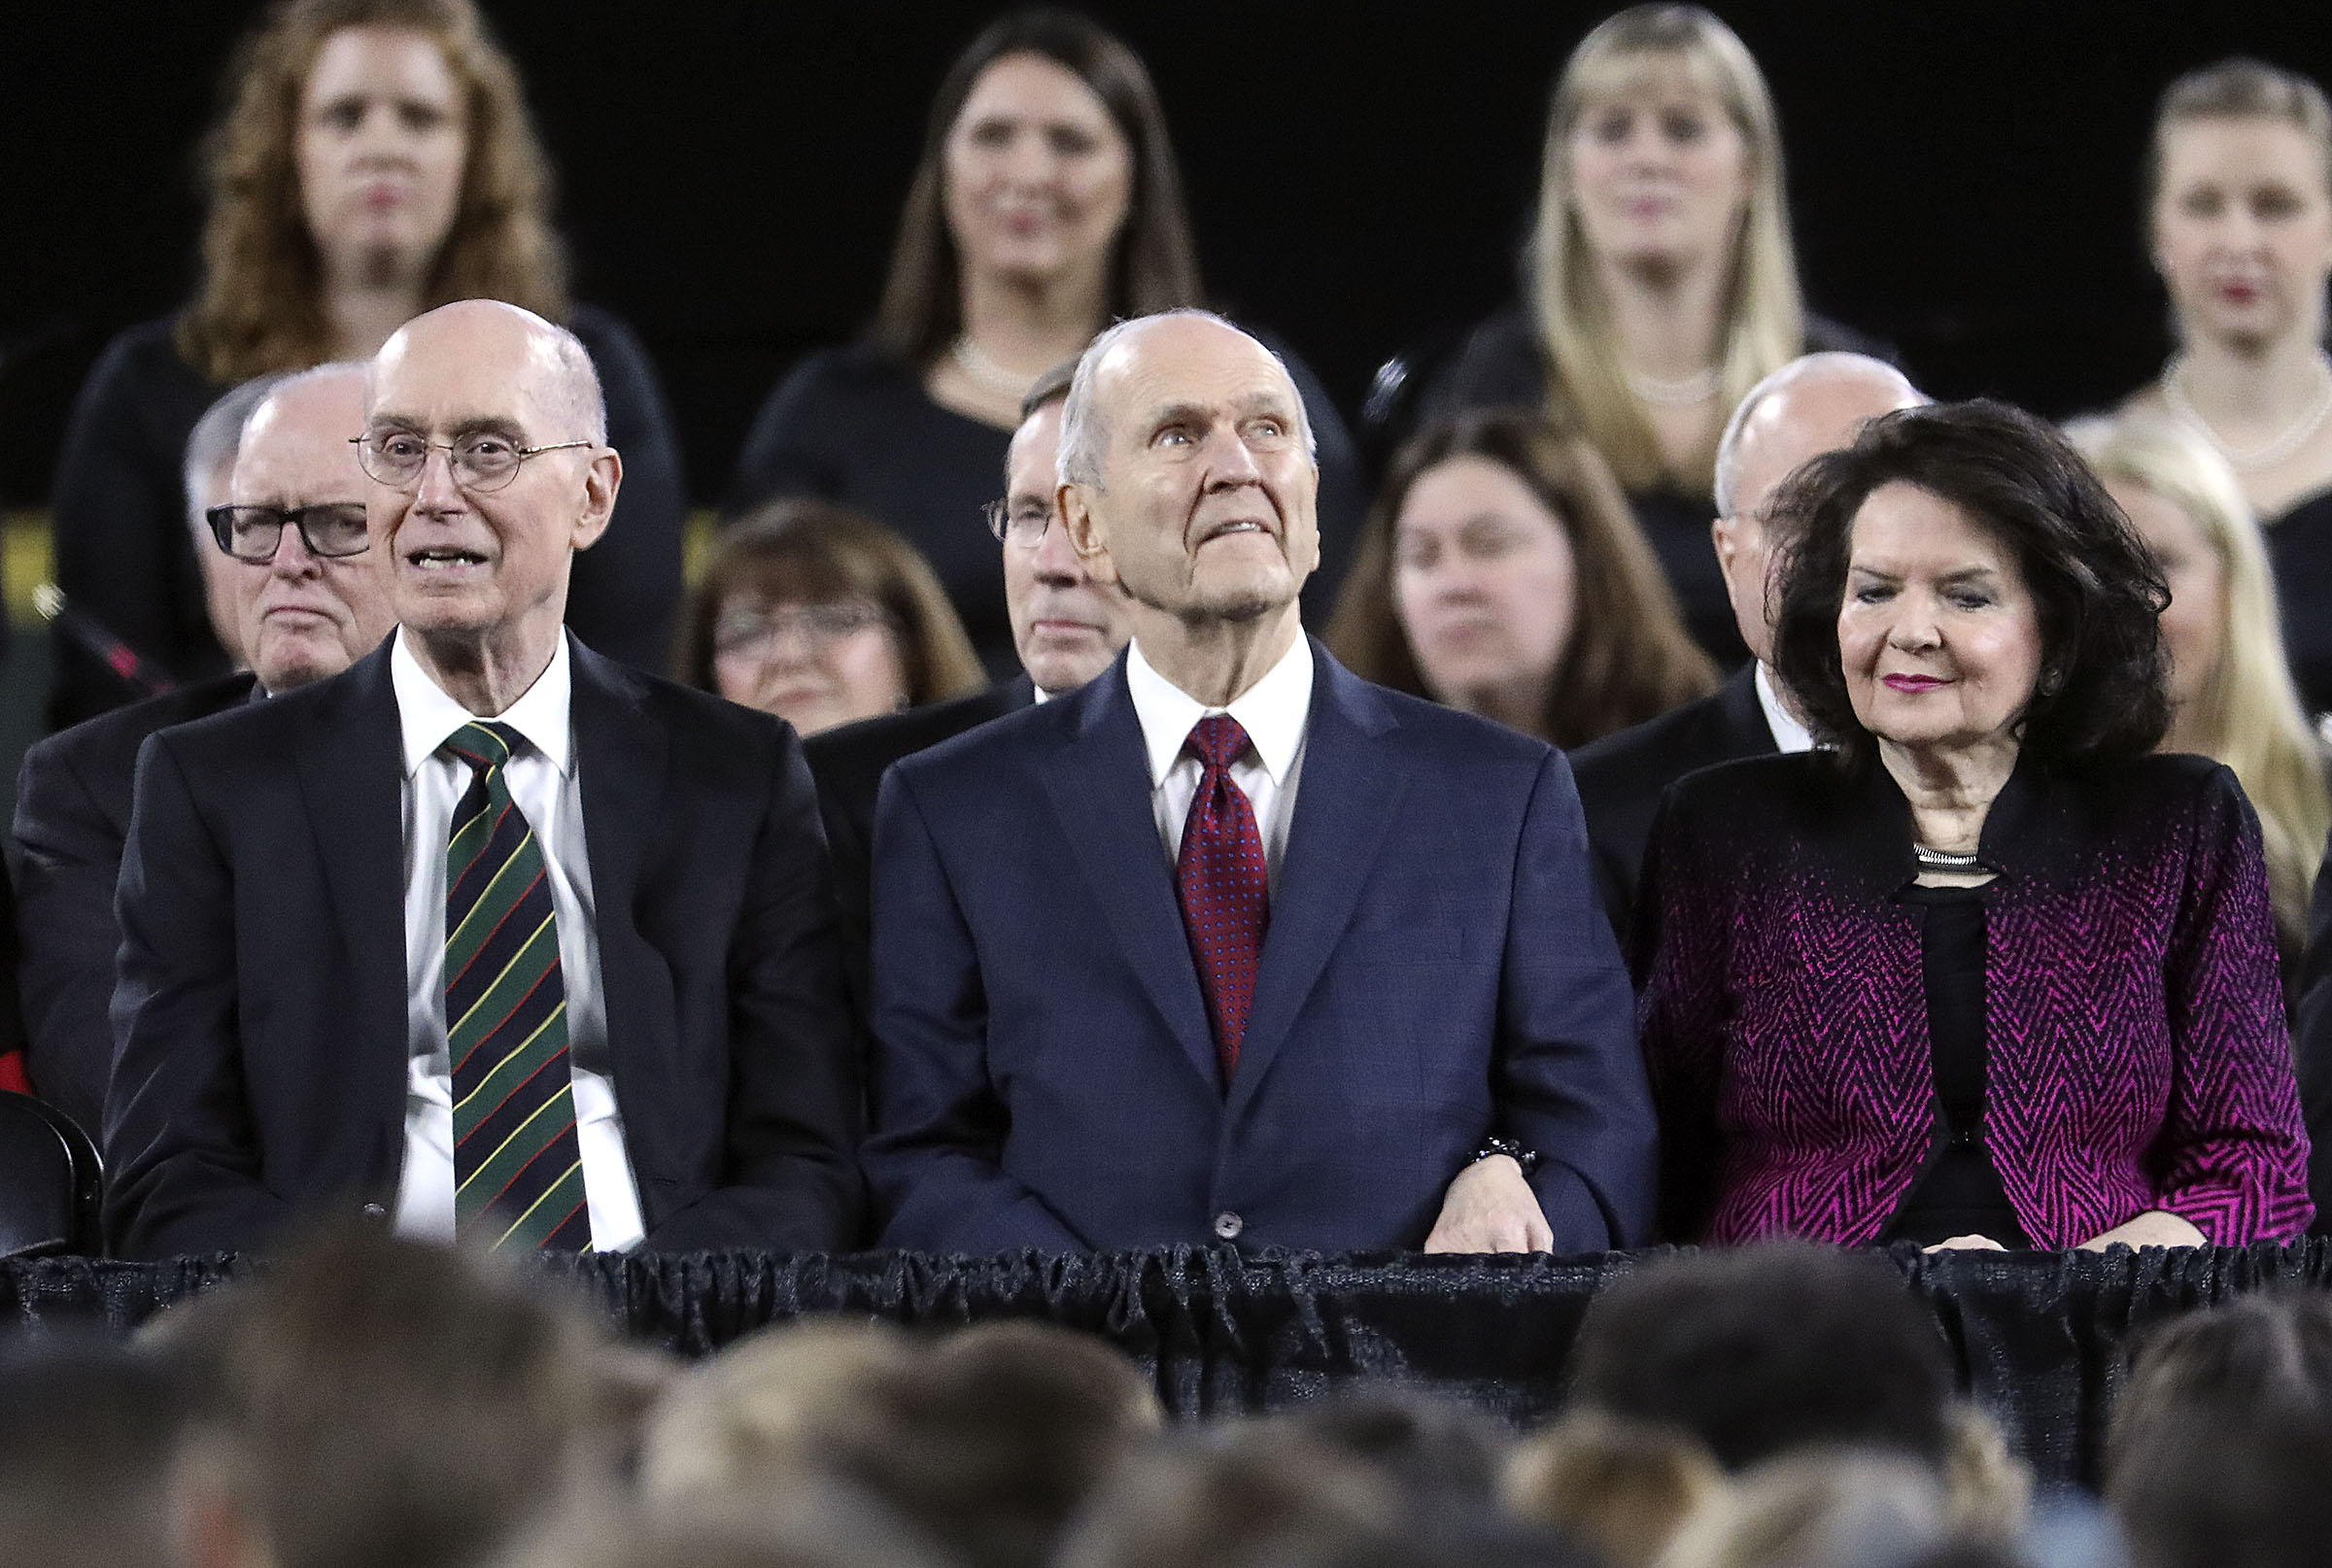 President Henry B. Eyring, President Russell M. Nelson and Sister Wendy Nelson listen to the Ensign Choir sing before speaking at Safeco Field in Seattle, Wash., on Saturday, Sept. 15, 2018.